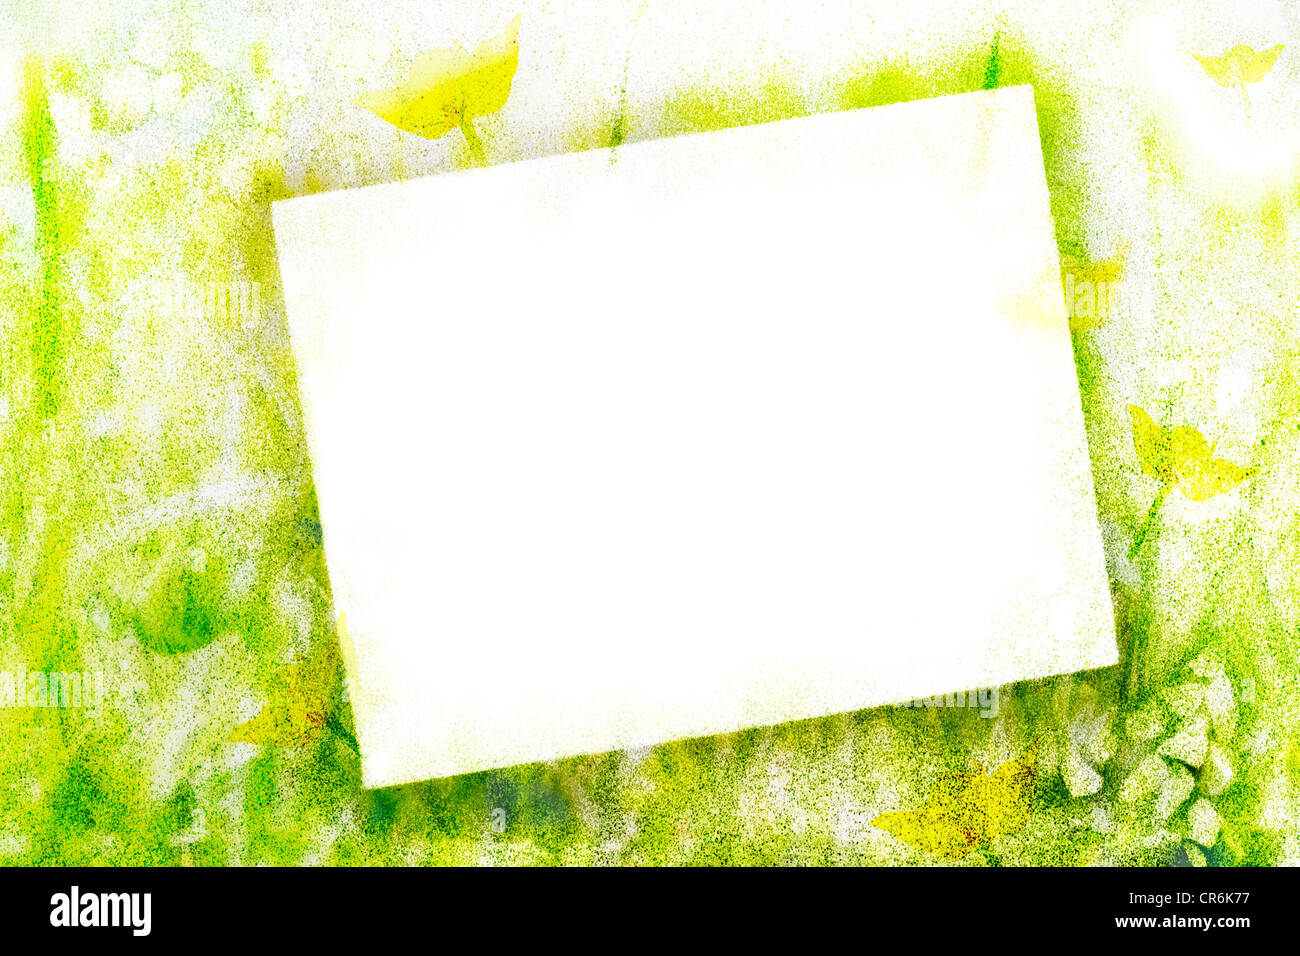 Airbrushed frame and background in green tones - Stock Image